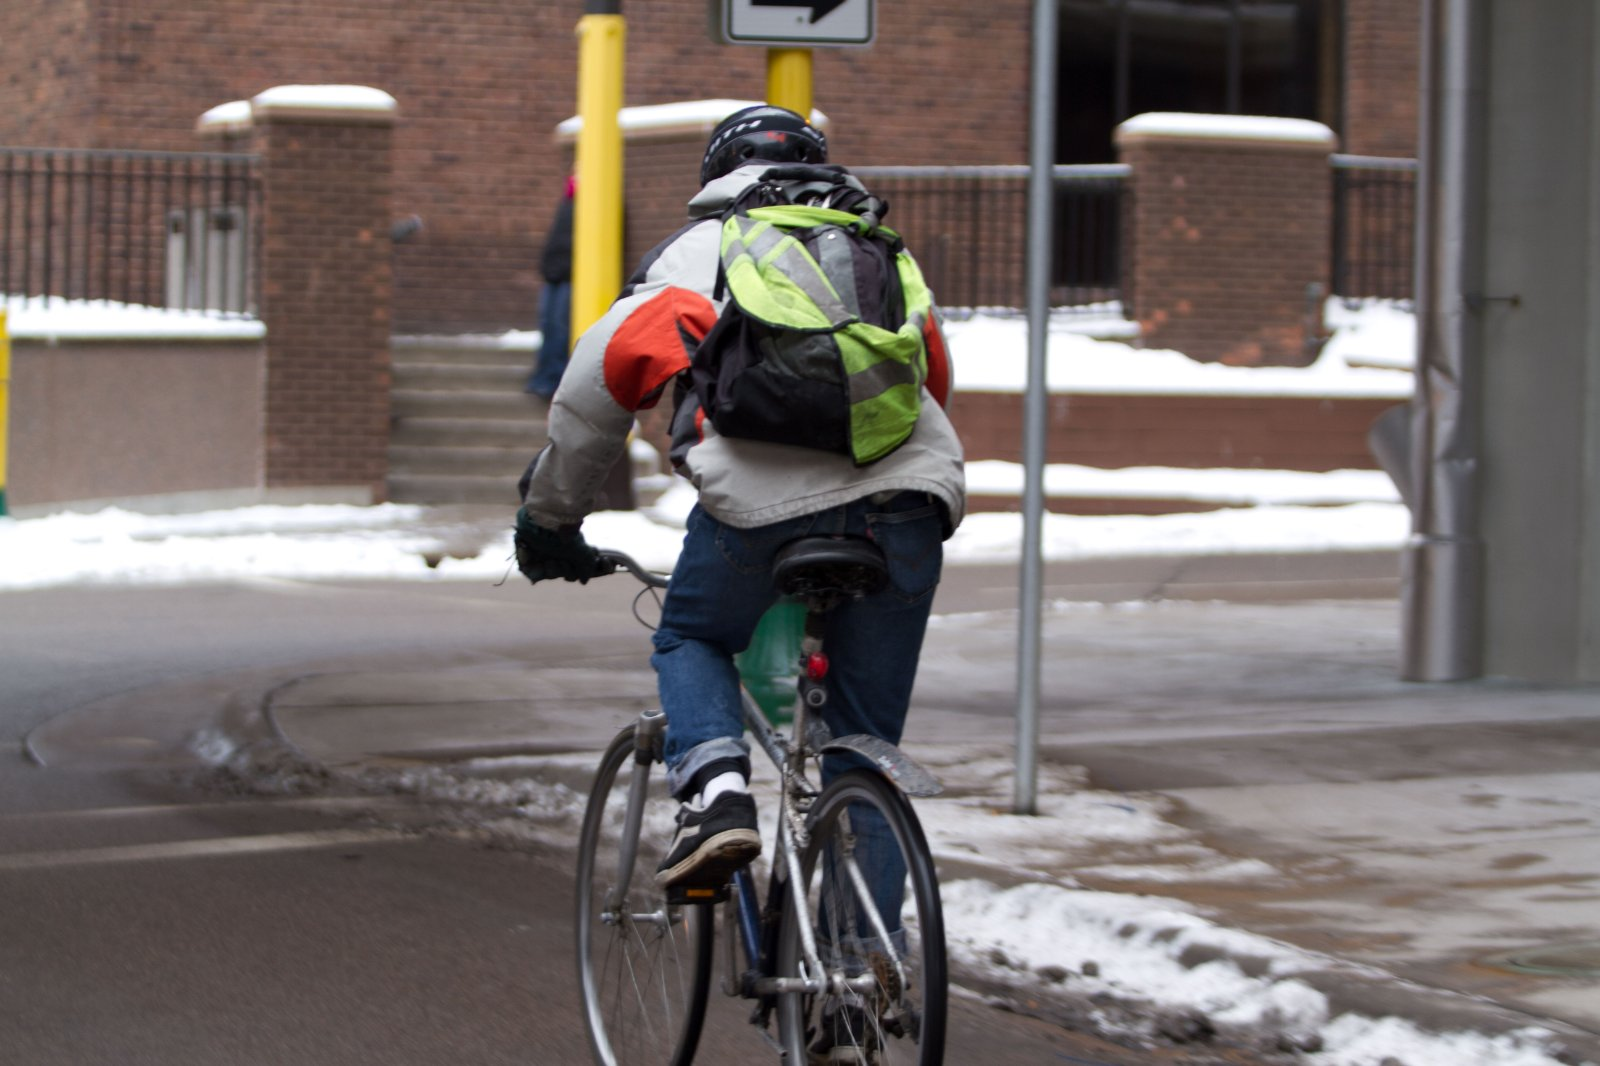 Minneapolis is designed with bikeways and paths to encourage active transportation, including biking and walking.